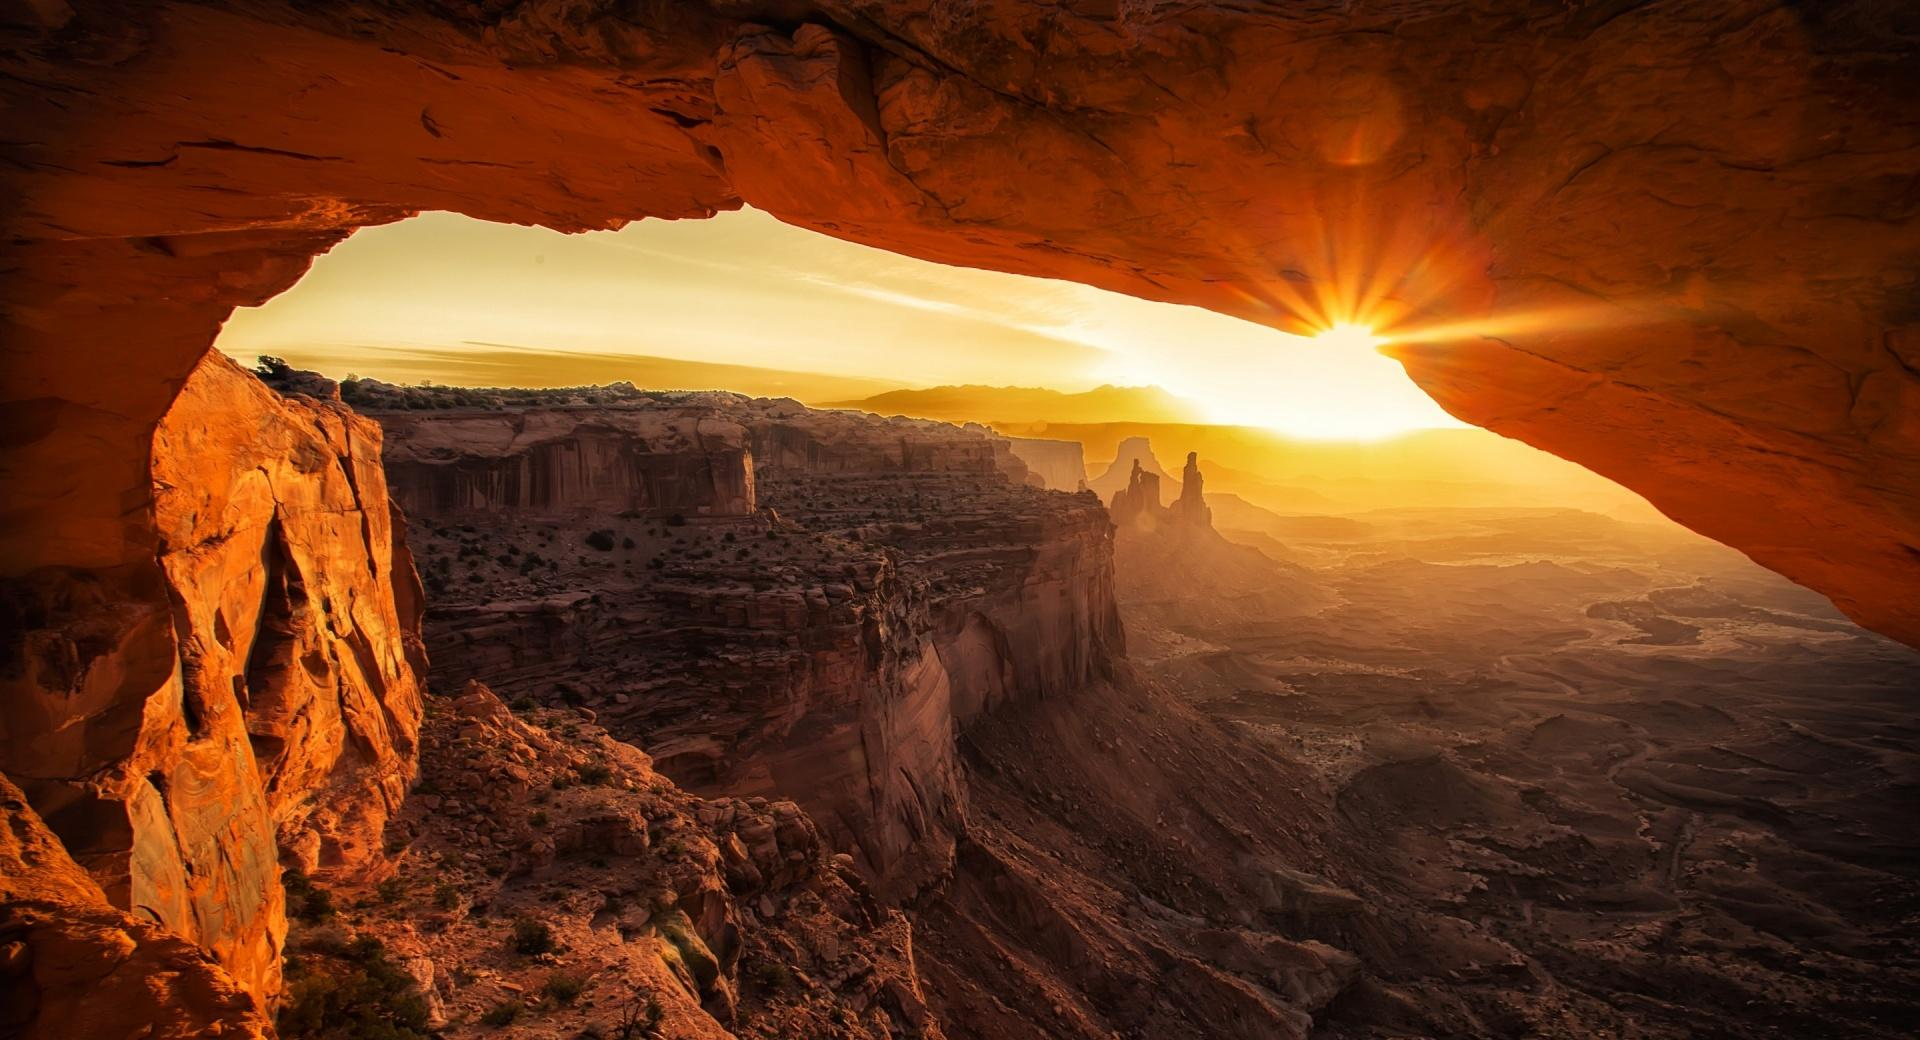 Canyonlands Cave Sunset wallpapers HD quality